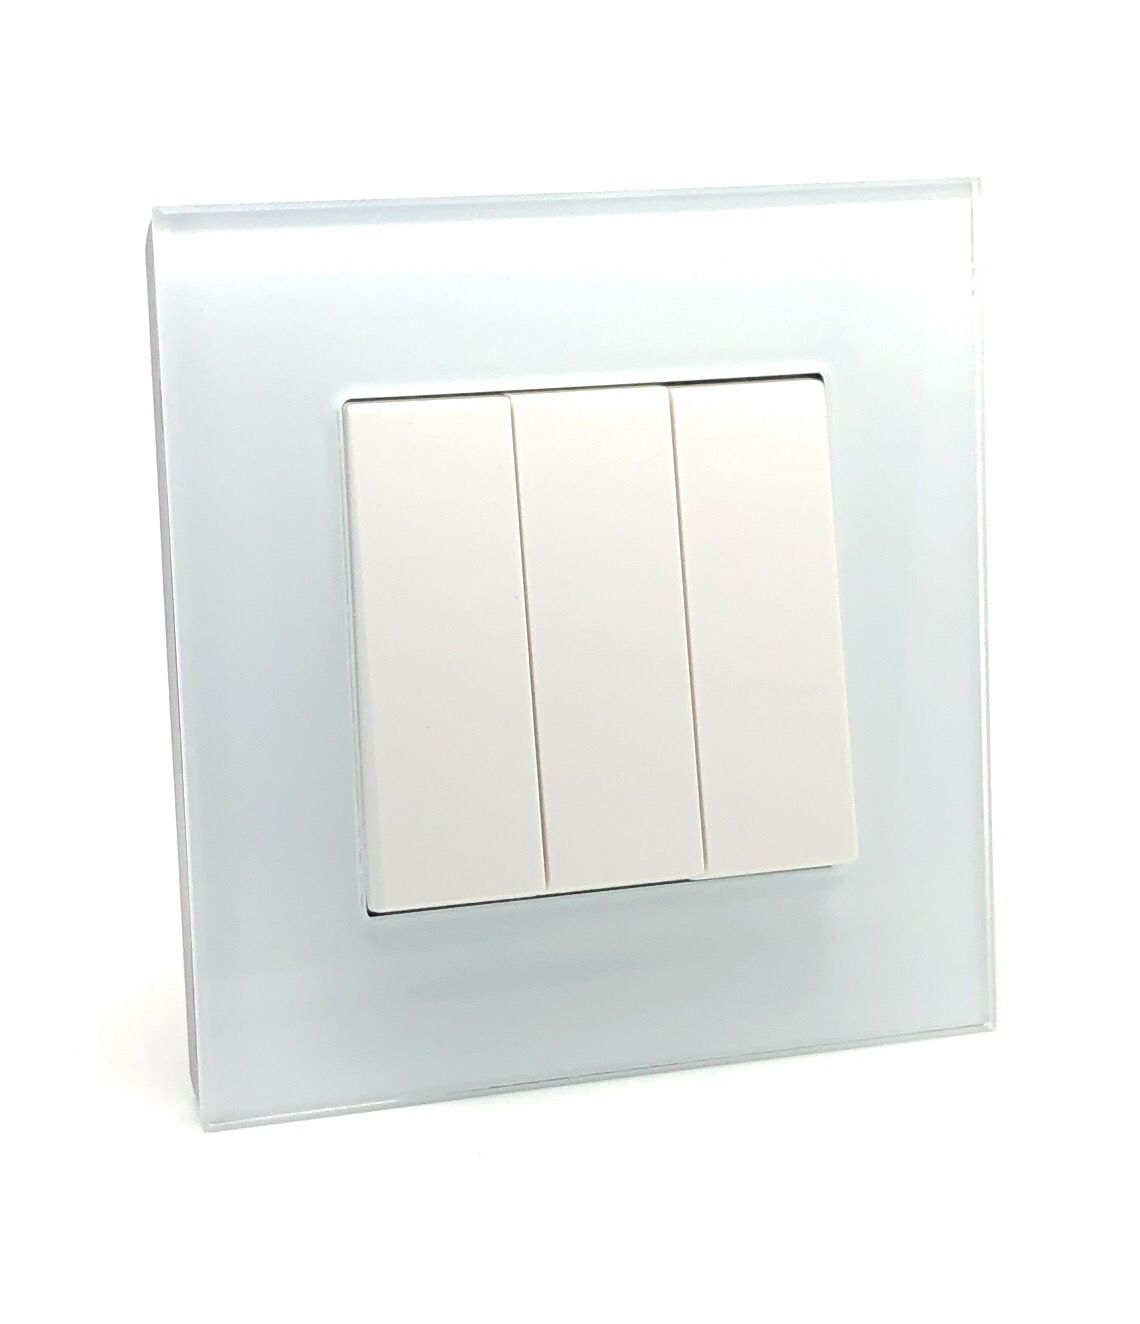 Rocker Light Switch >> Illucio 3 Gang 1 Or 2 Way 10 Amp On Off Rocker Light Switch White